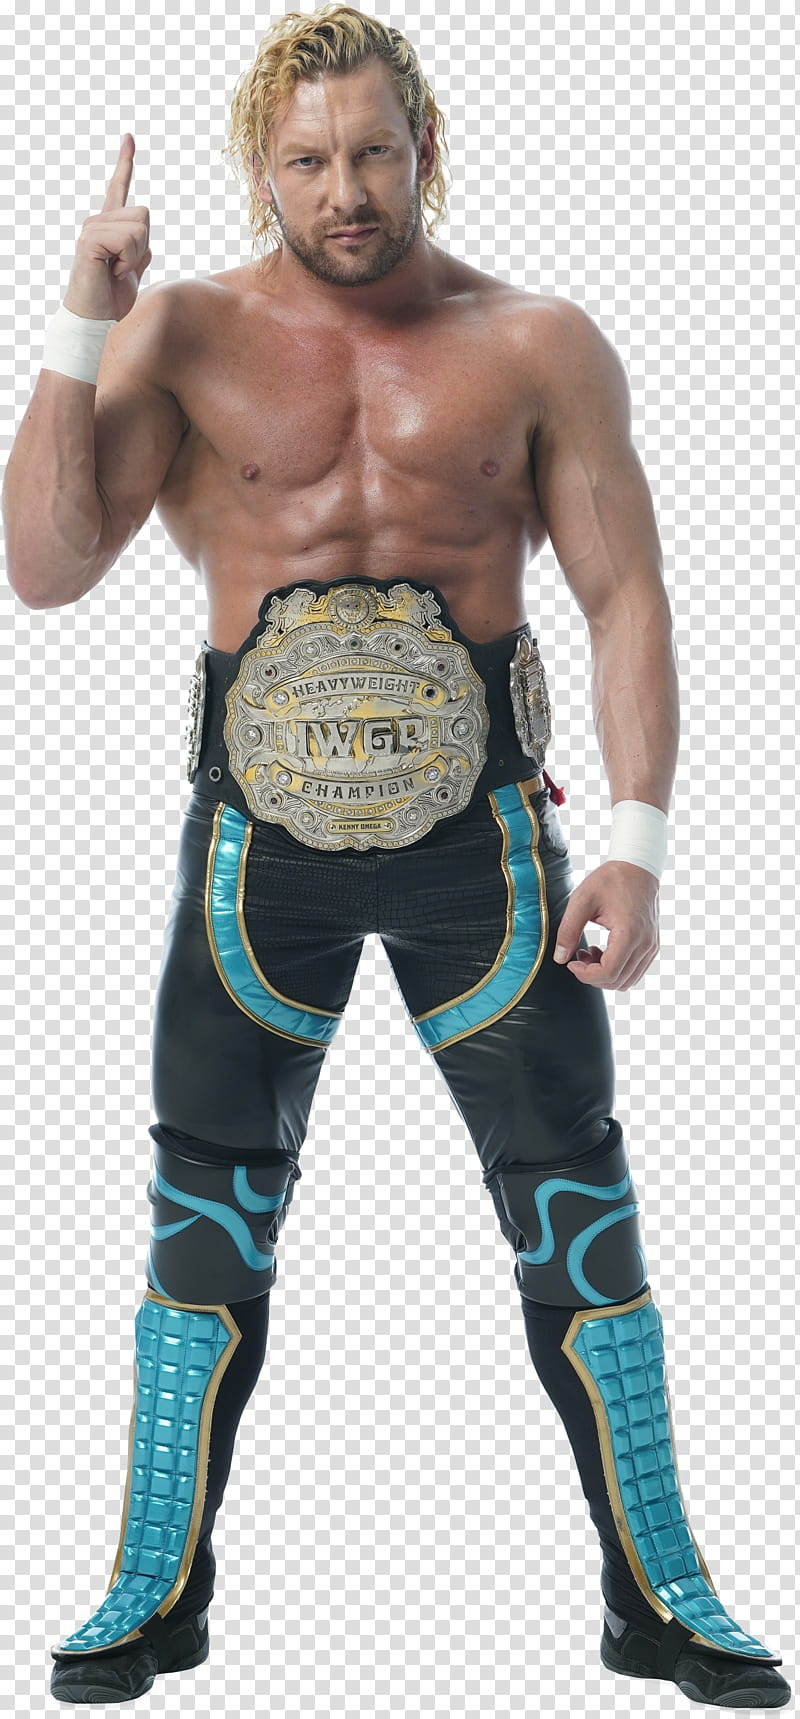 Kenny Omega IWGP Heavyweight Champion transparent background.